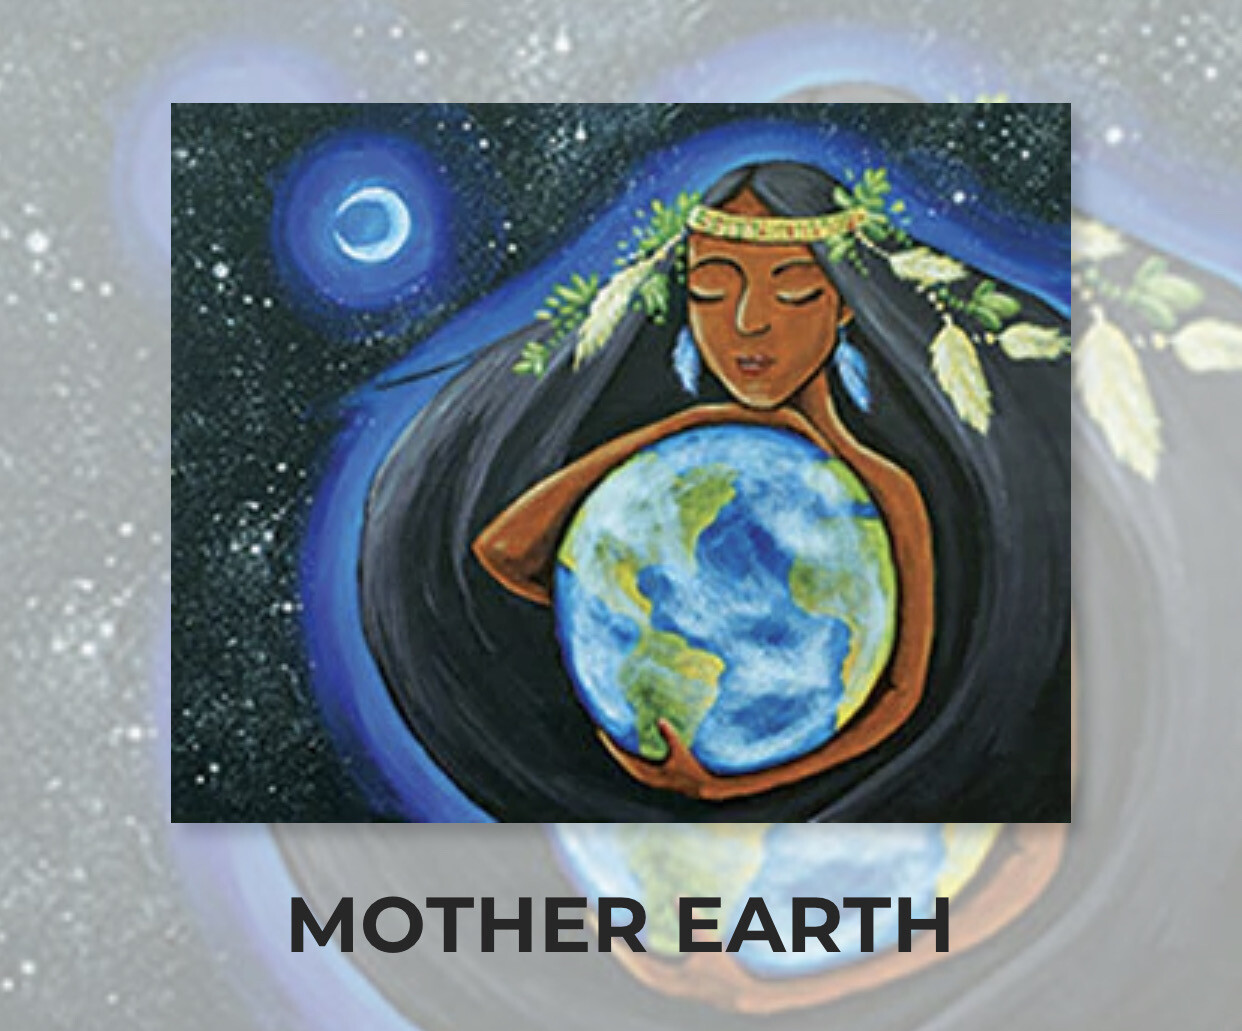 Mother Earth ADULT Acrylic Paint On Canvas DIY Art Kit - 3 Week Special Order